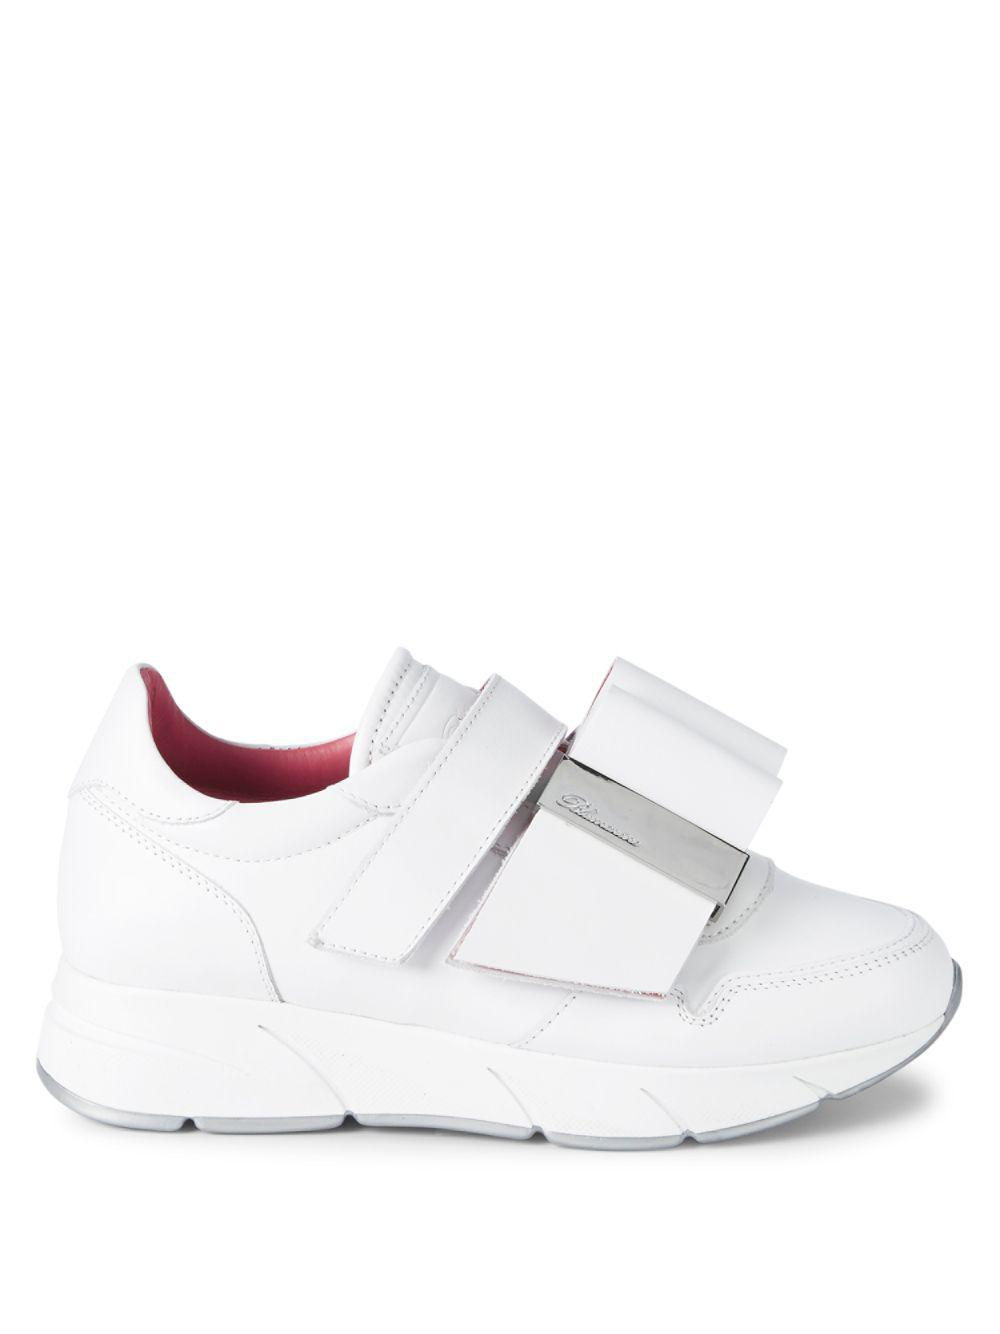 Blumarine Strap-front Leather Sneakers in White